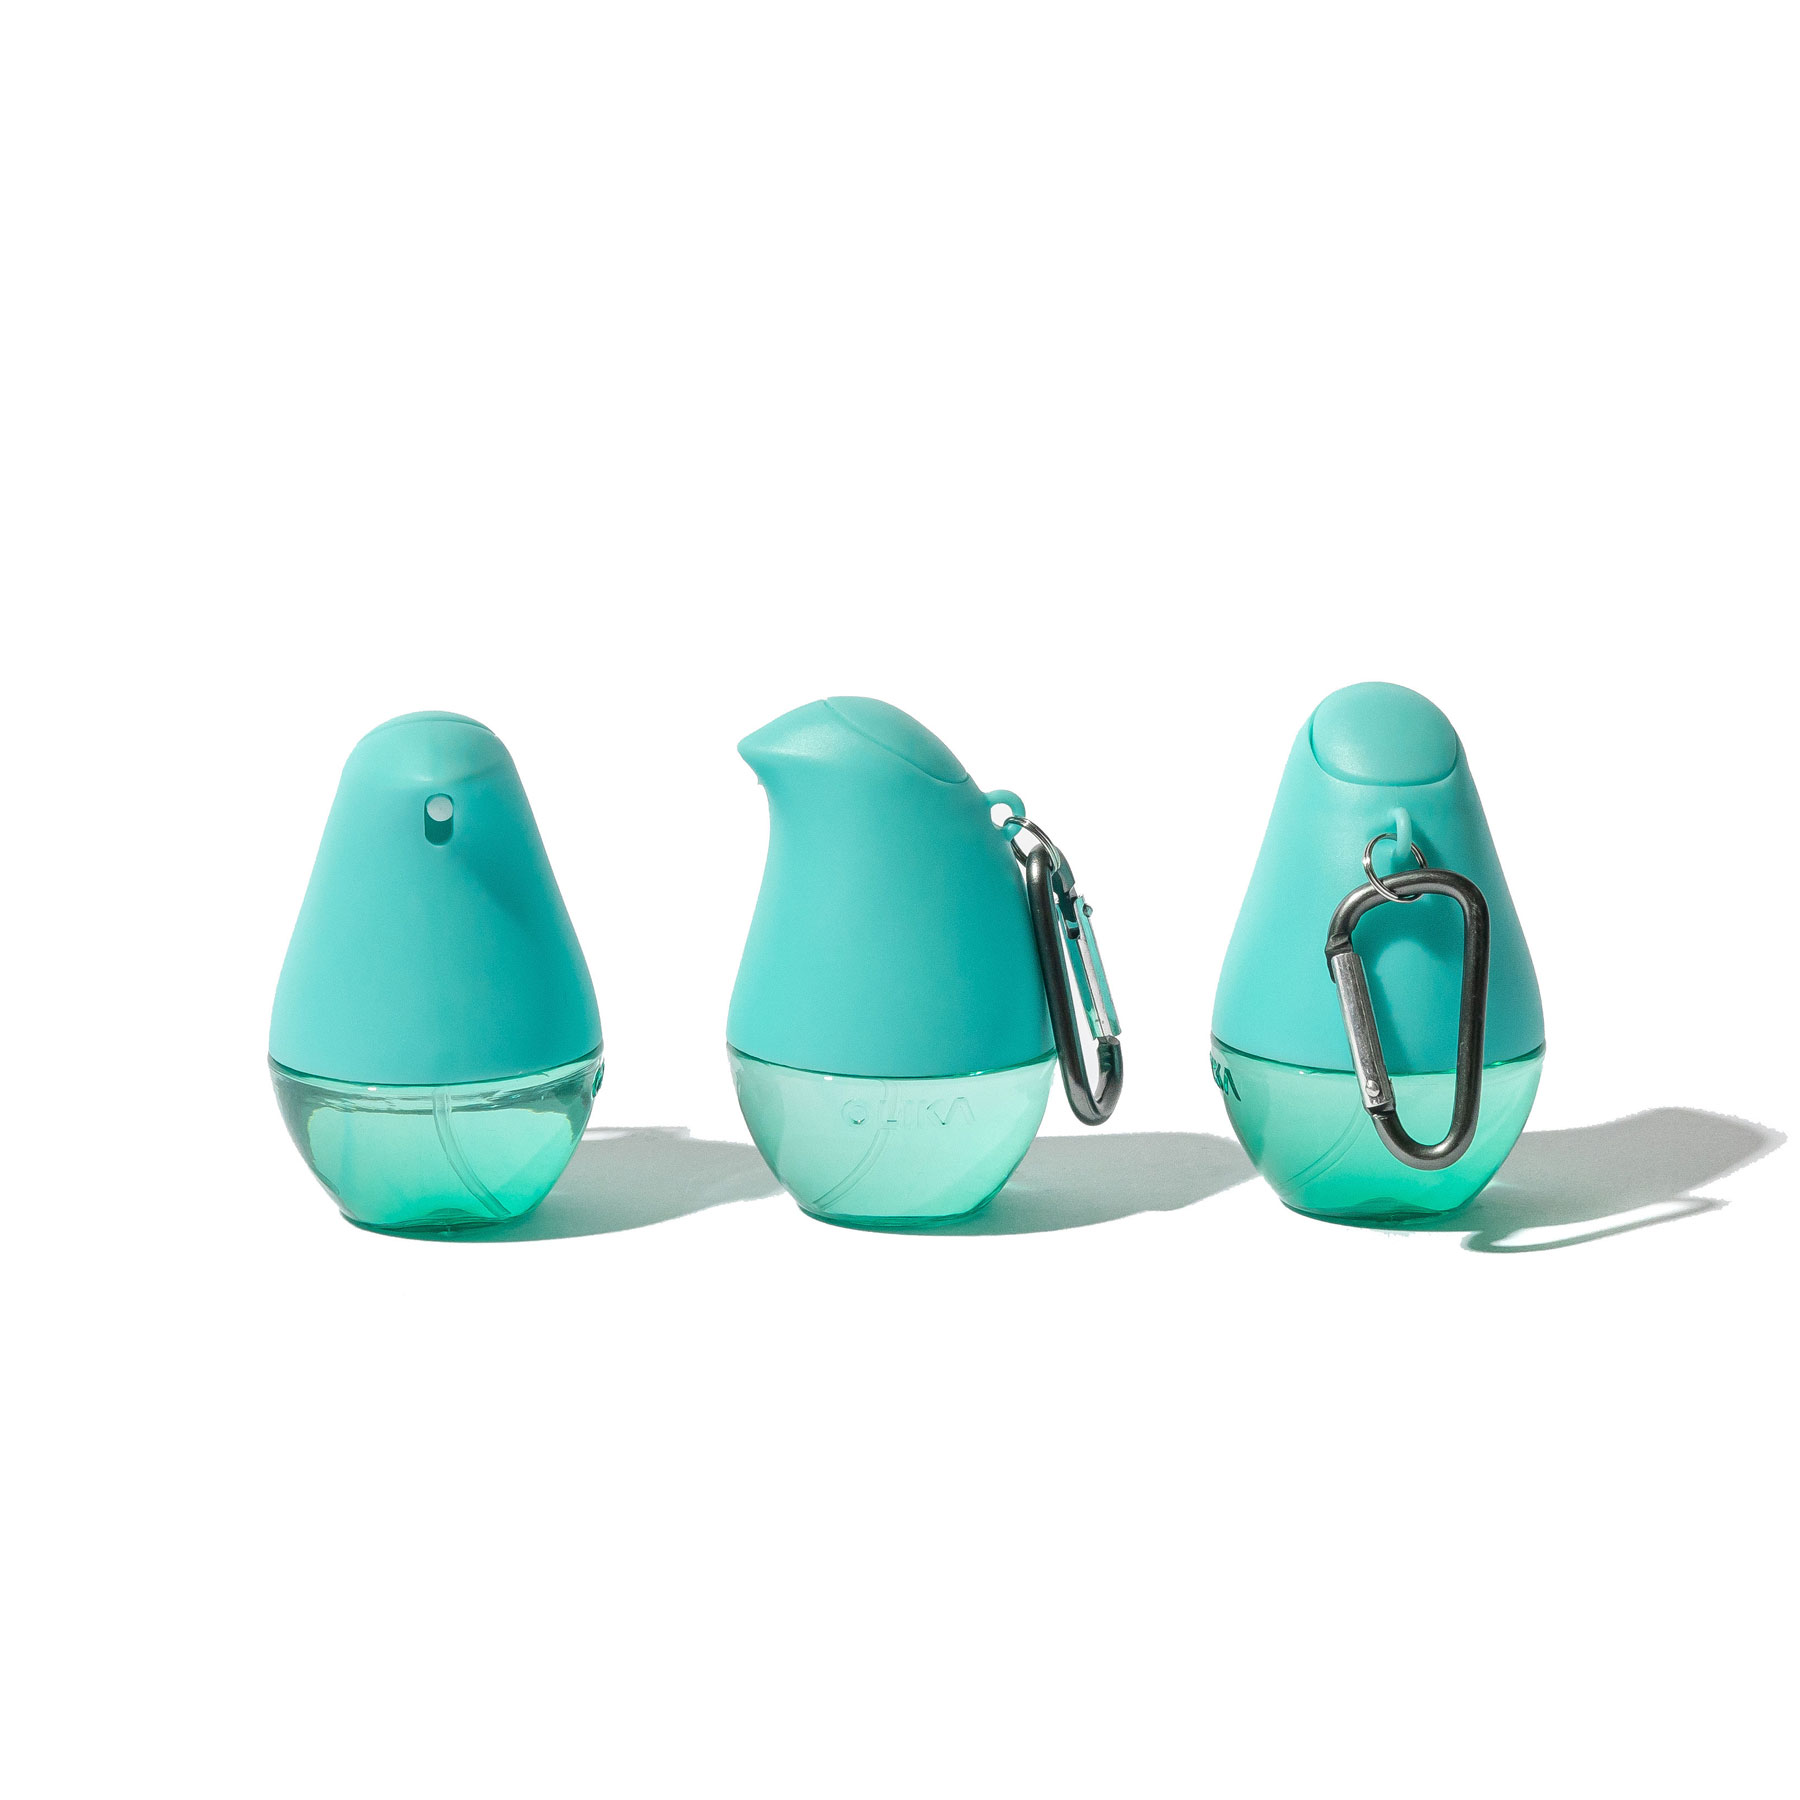 Best gifts for sisters - OLIKA Hydrating Hand Sanitizer Clip-On